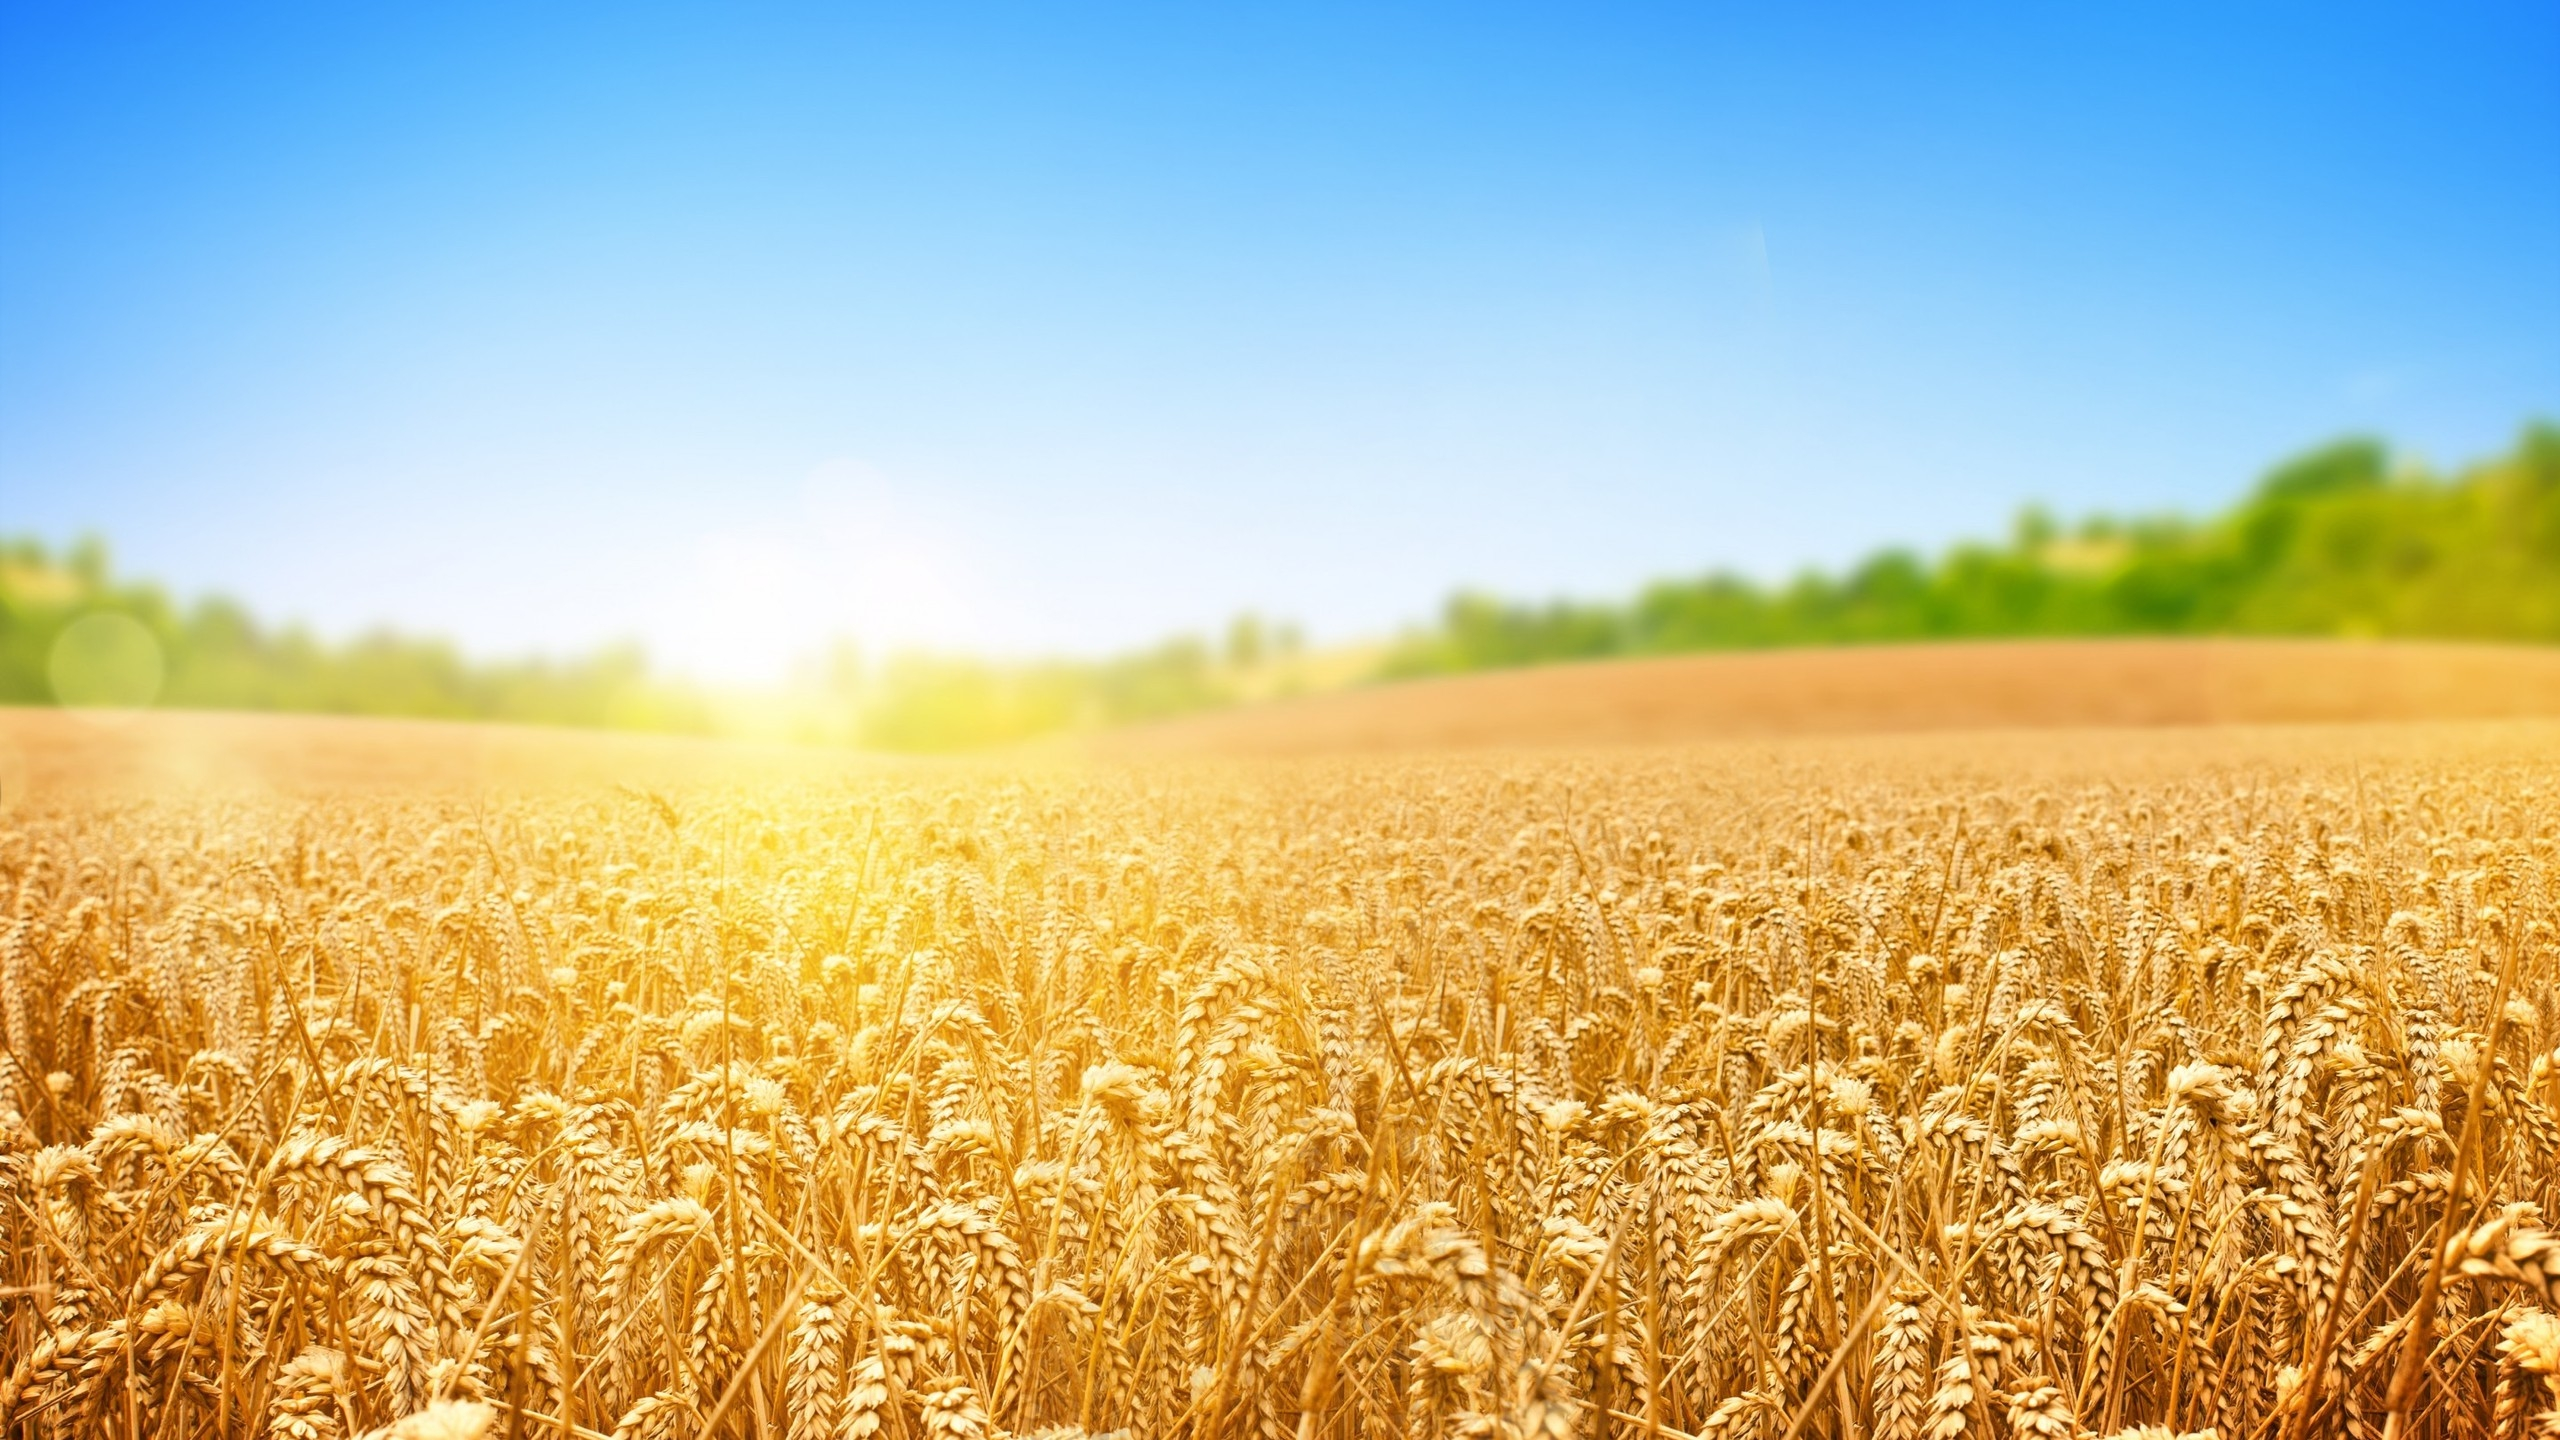 2560x1440 Wheat Field